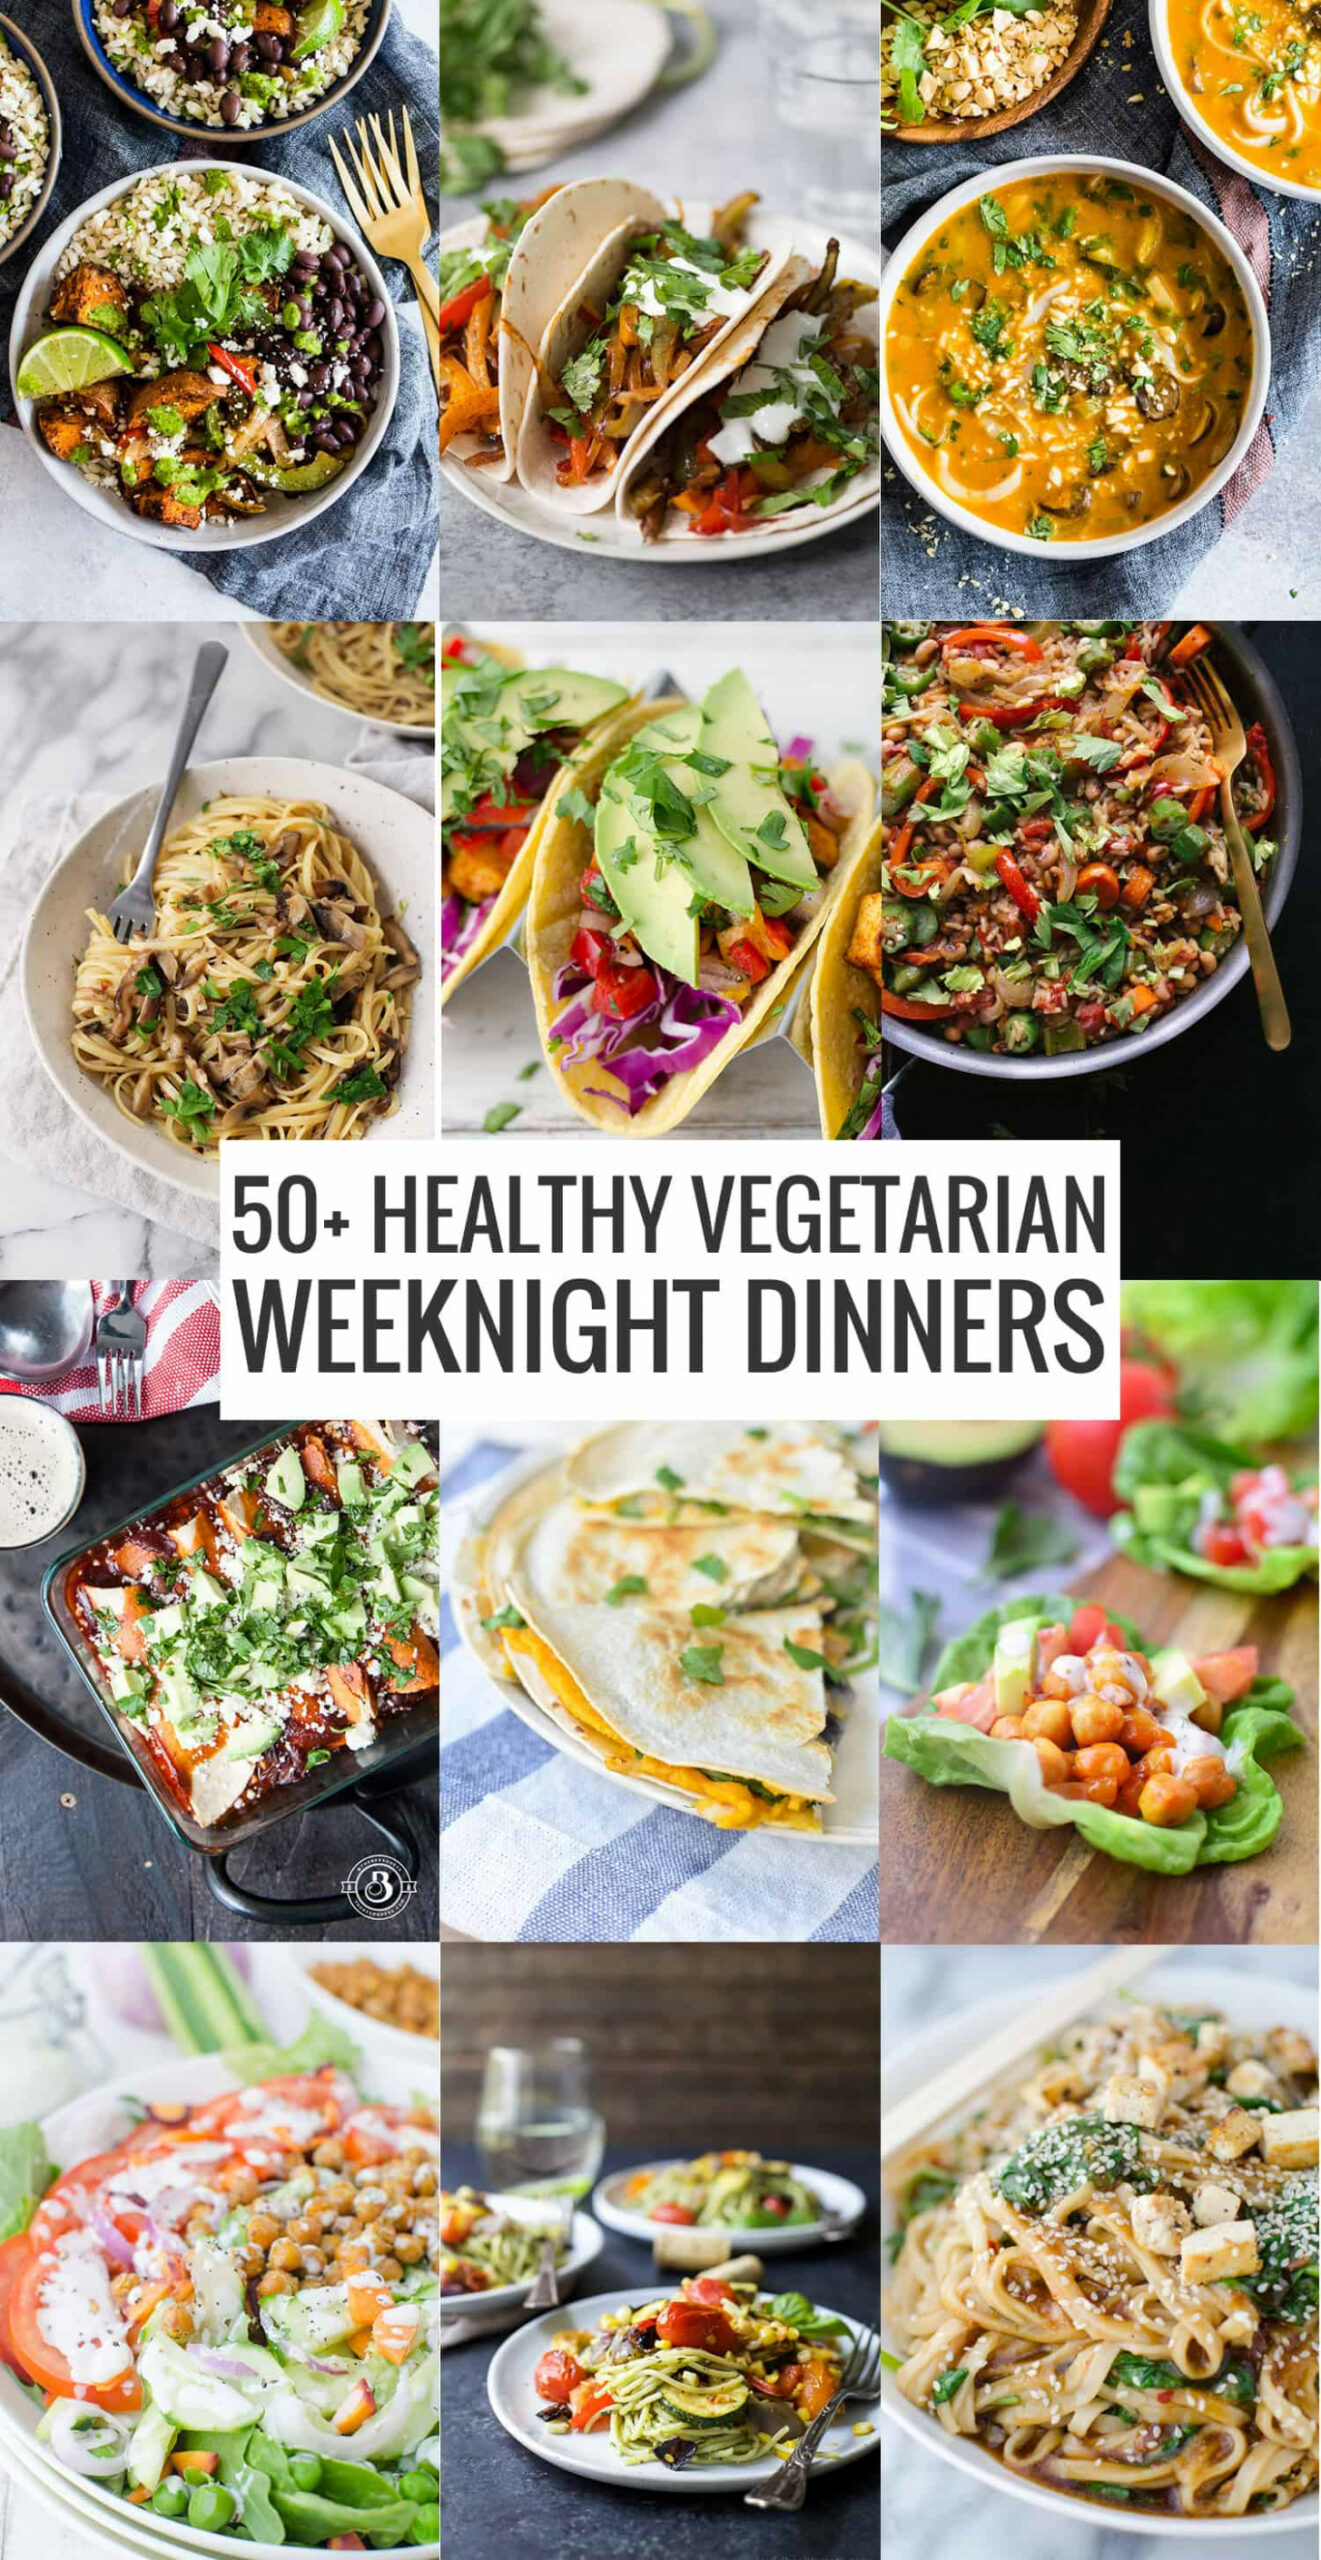 11+ Healthy Vegetarian Meals - Delish Knowledge - Recipes Vegetarian Quick